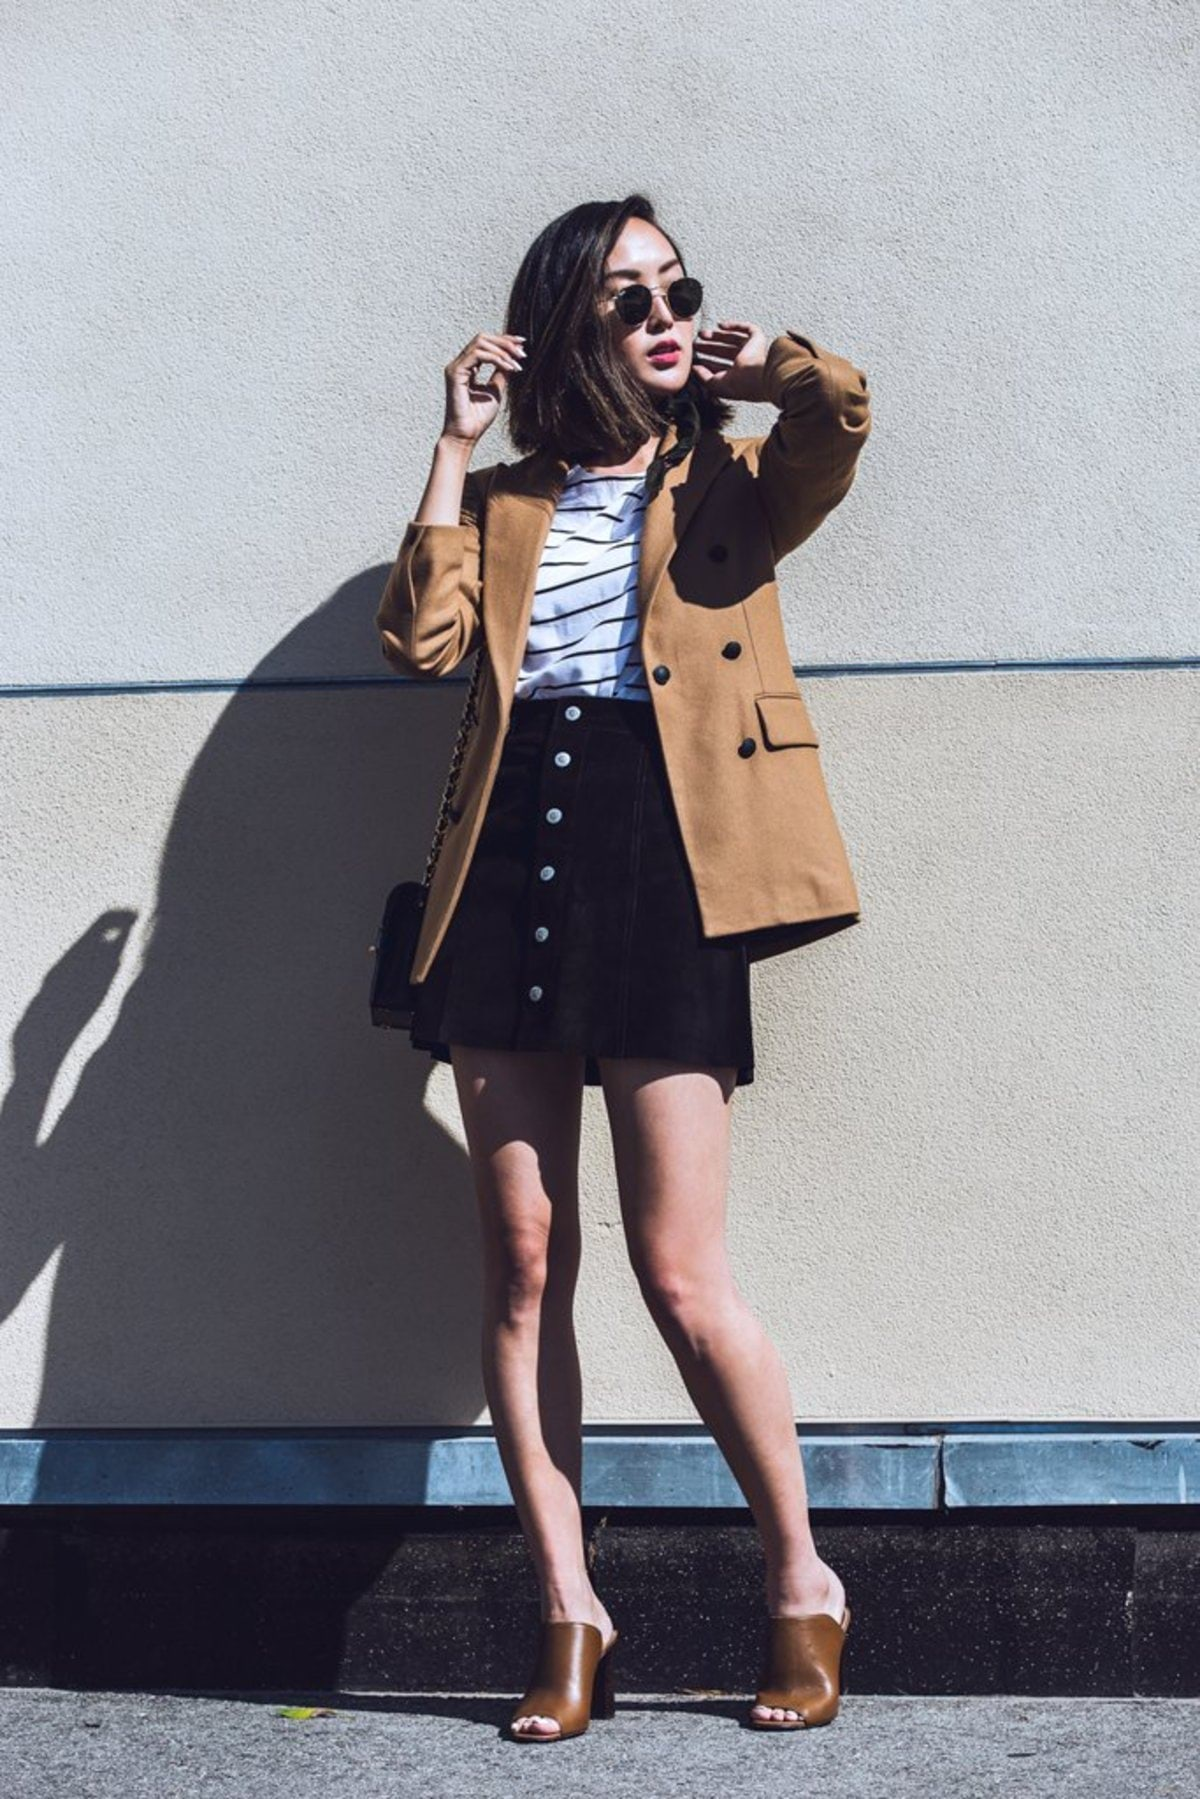 camel-colored-coat-over-striped-tee-suede-skirt-pair-mules